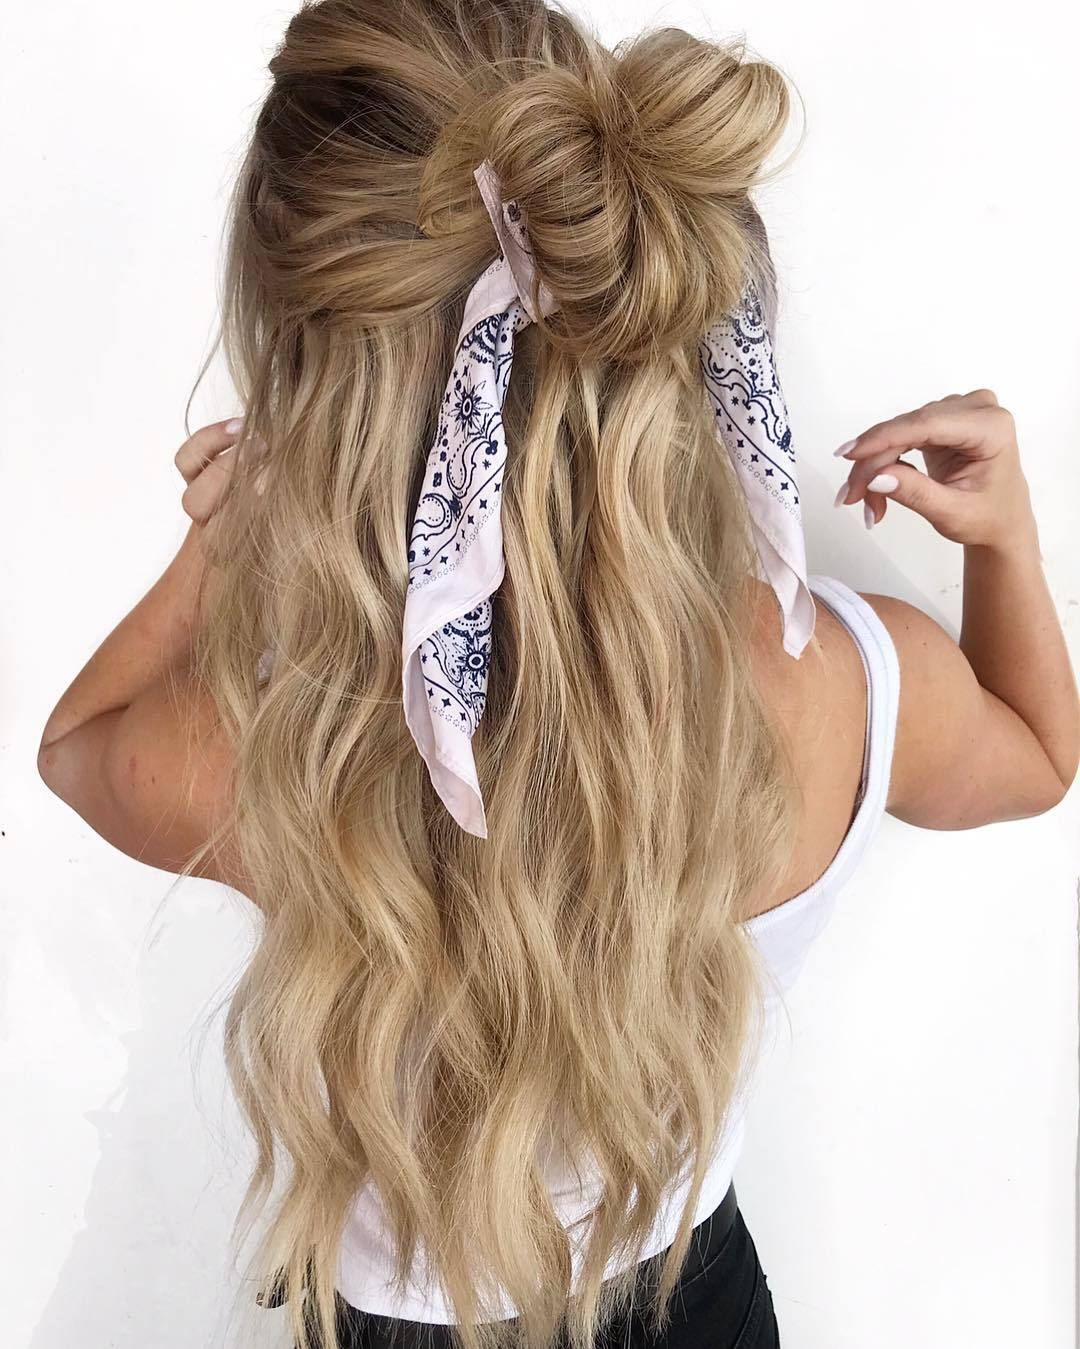 Bandana hairstyles: Woman with long dirty blonde hair styled into a half-up, half-down bun with a bandana wrapped around it